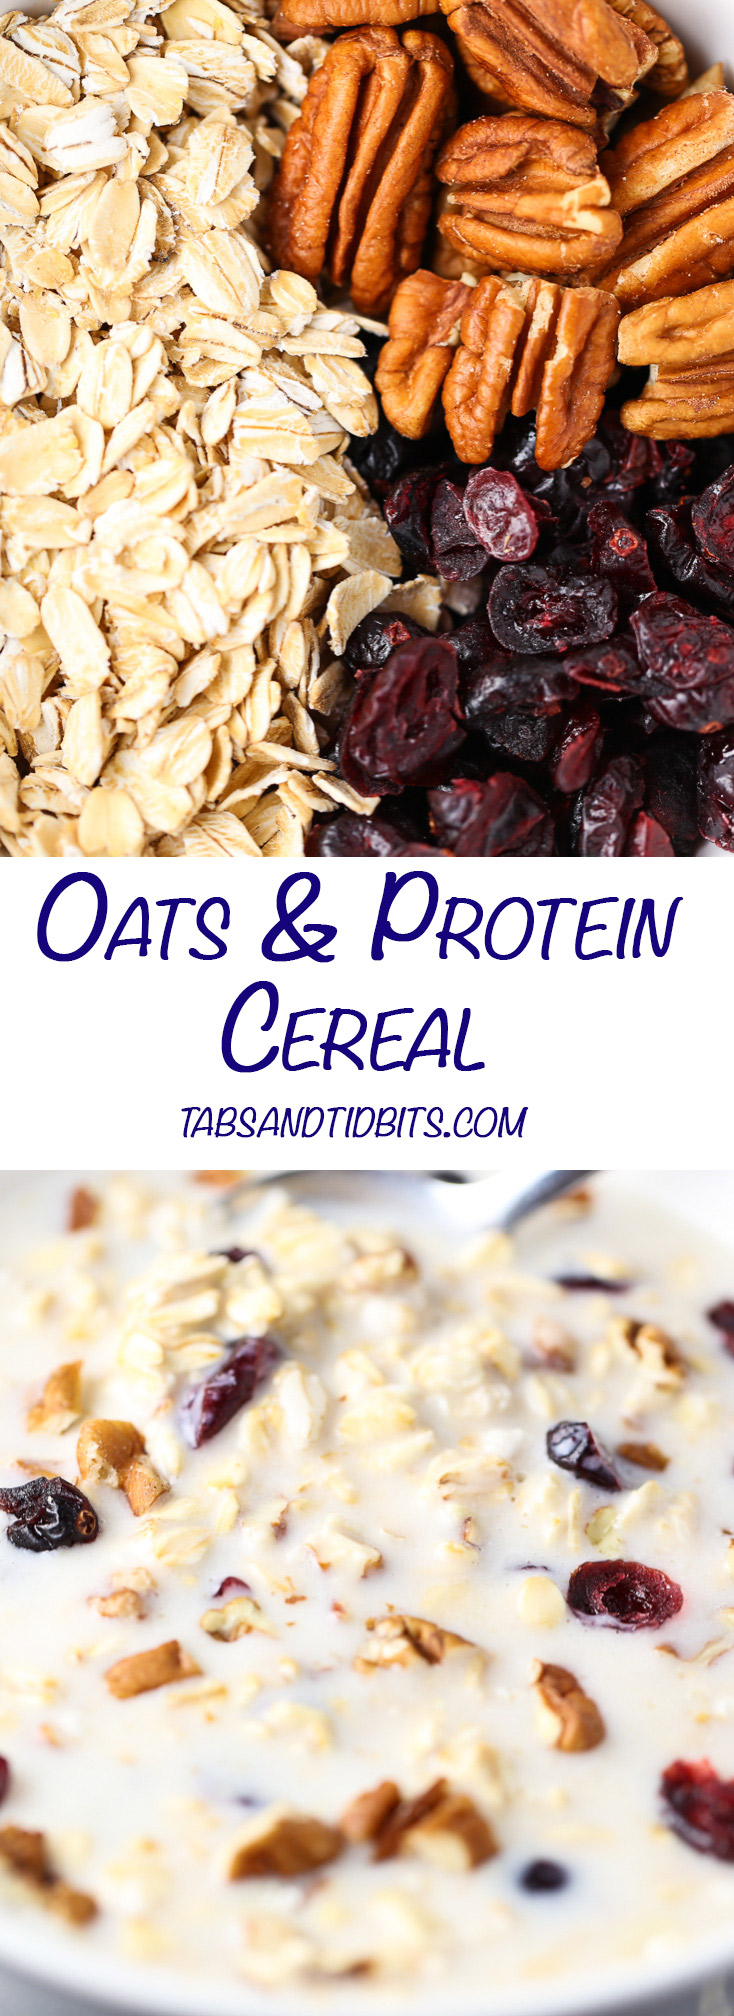 Oats Protein Cereal - Oats in almond milk with nuts, dried fruit and protein powder.